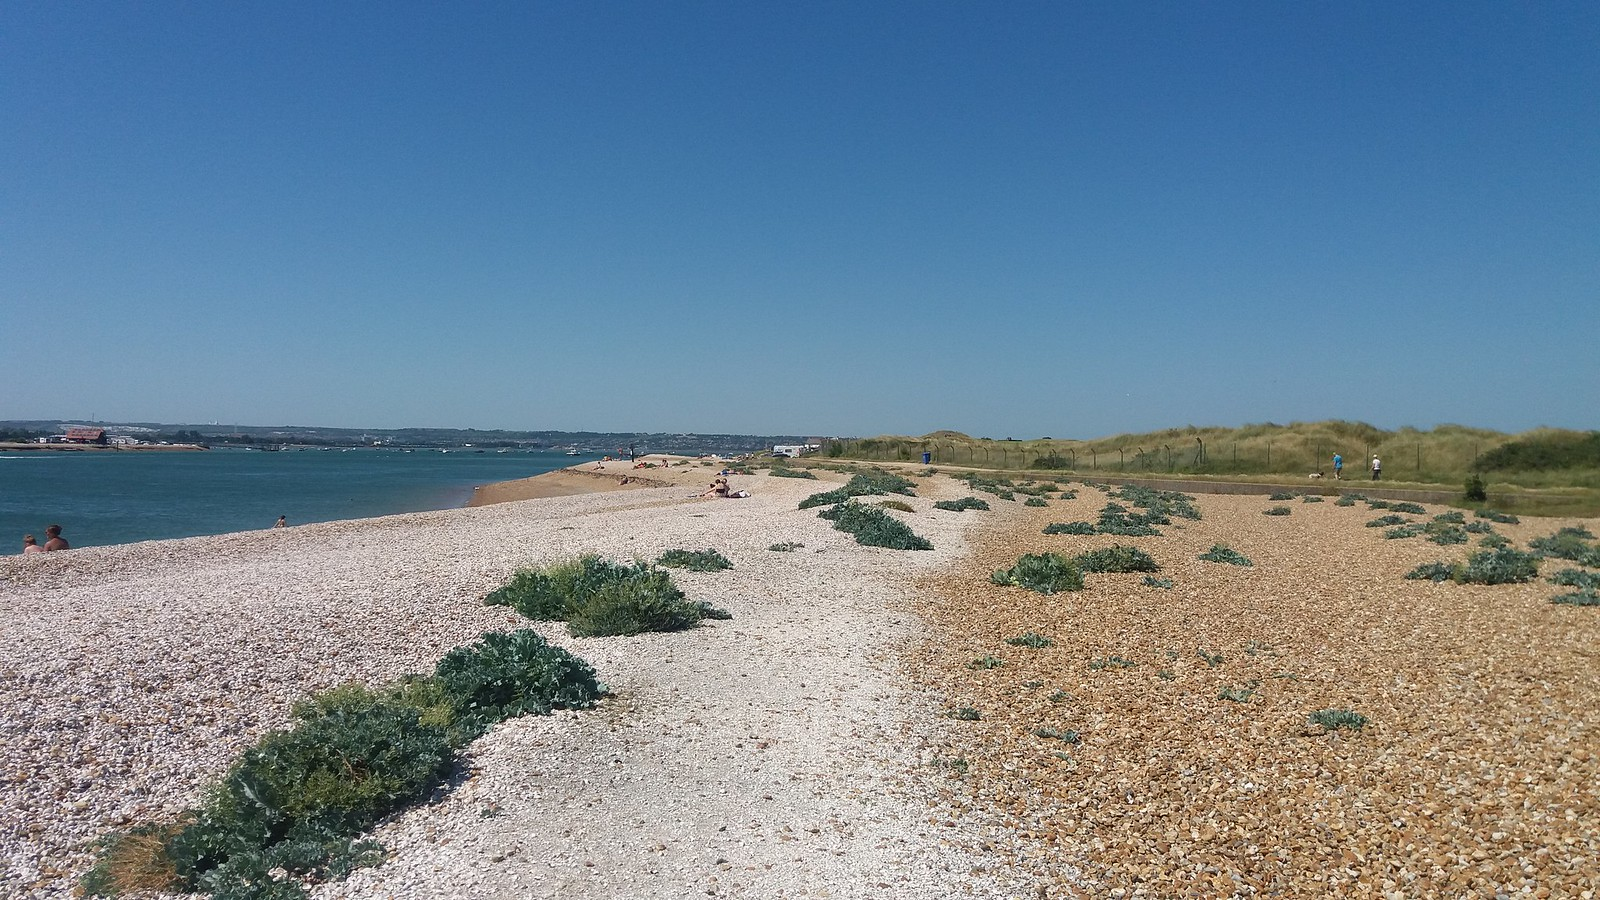 20160719_150646 View from beach back towards the Ferry Inn